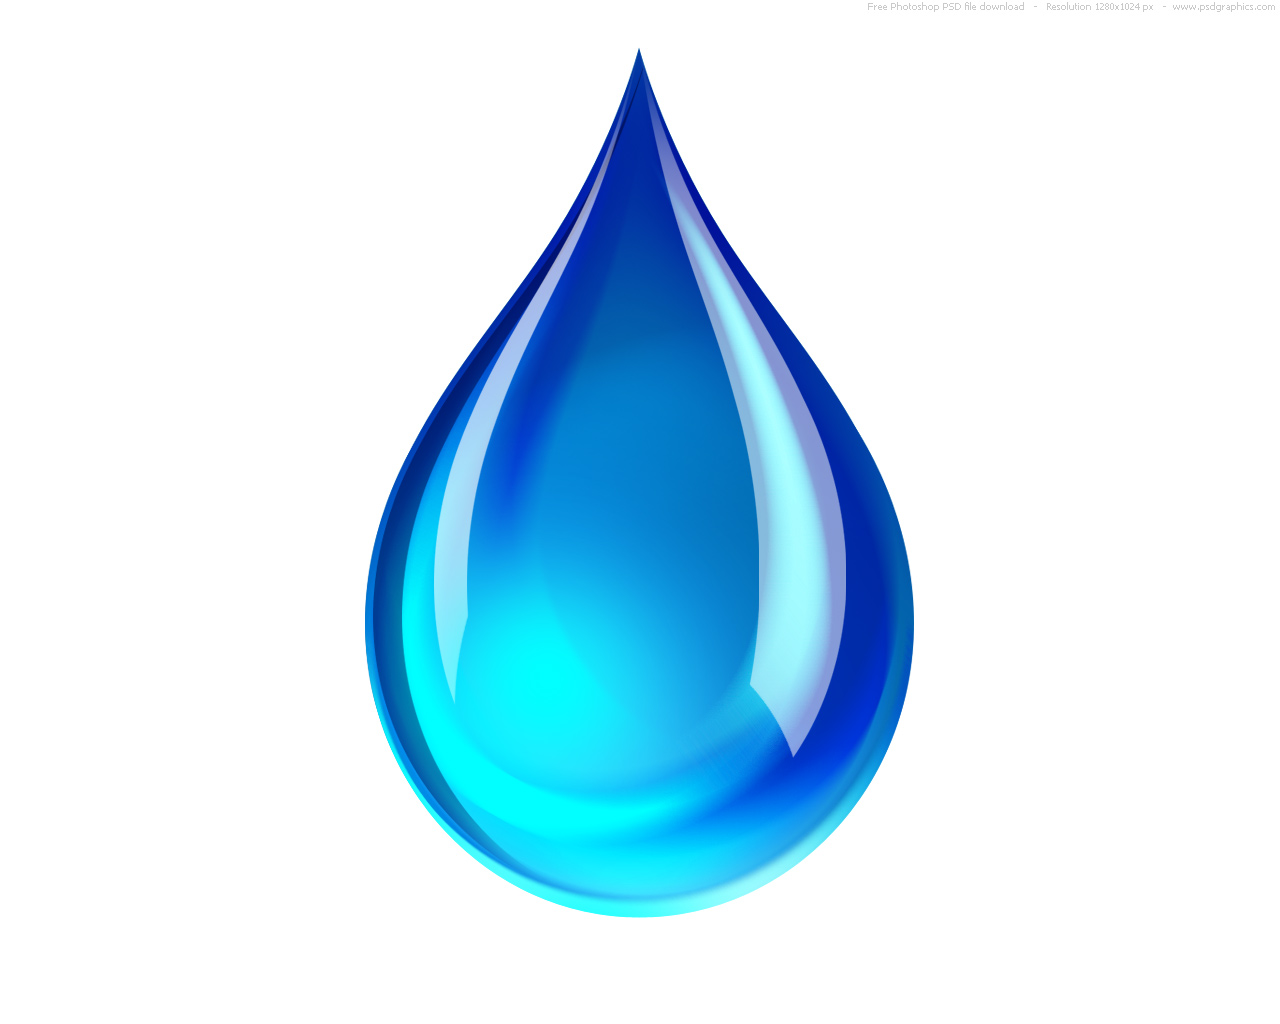 5 Rain Drop Icon Images